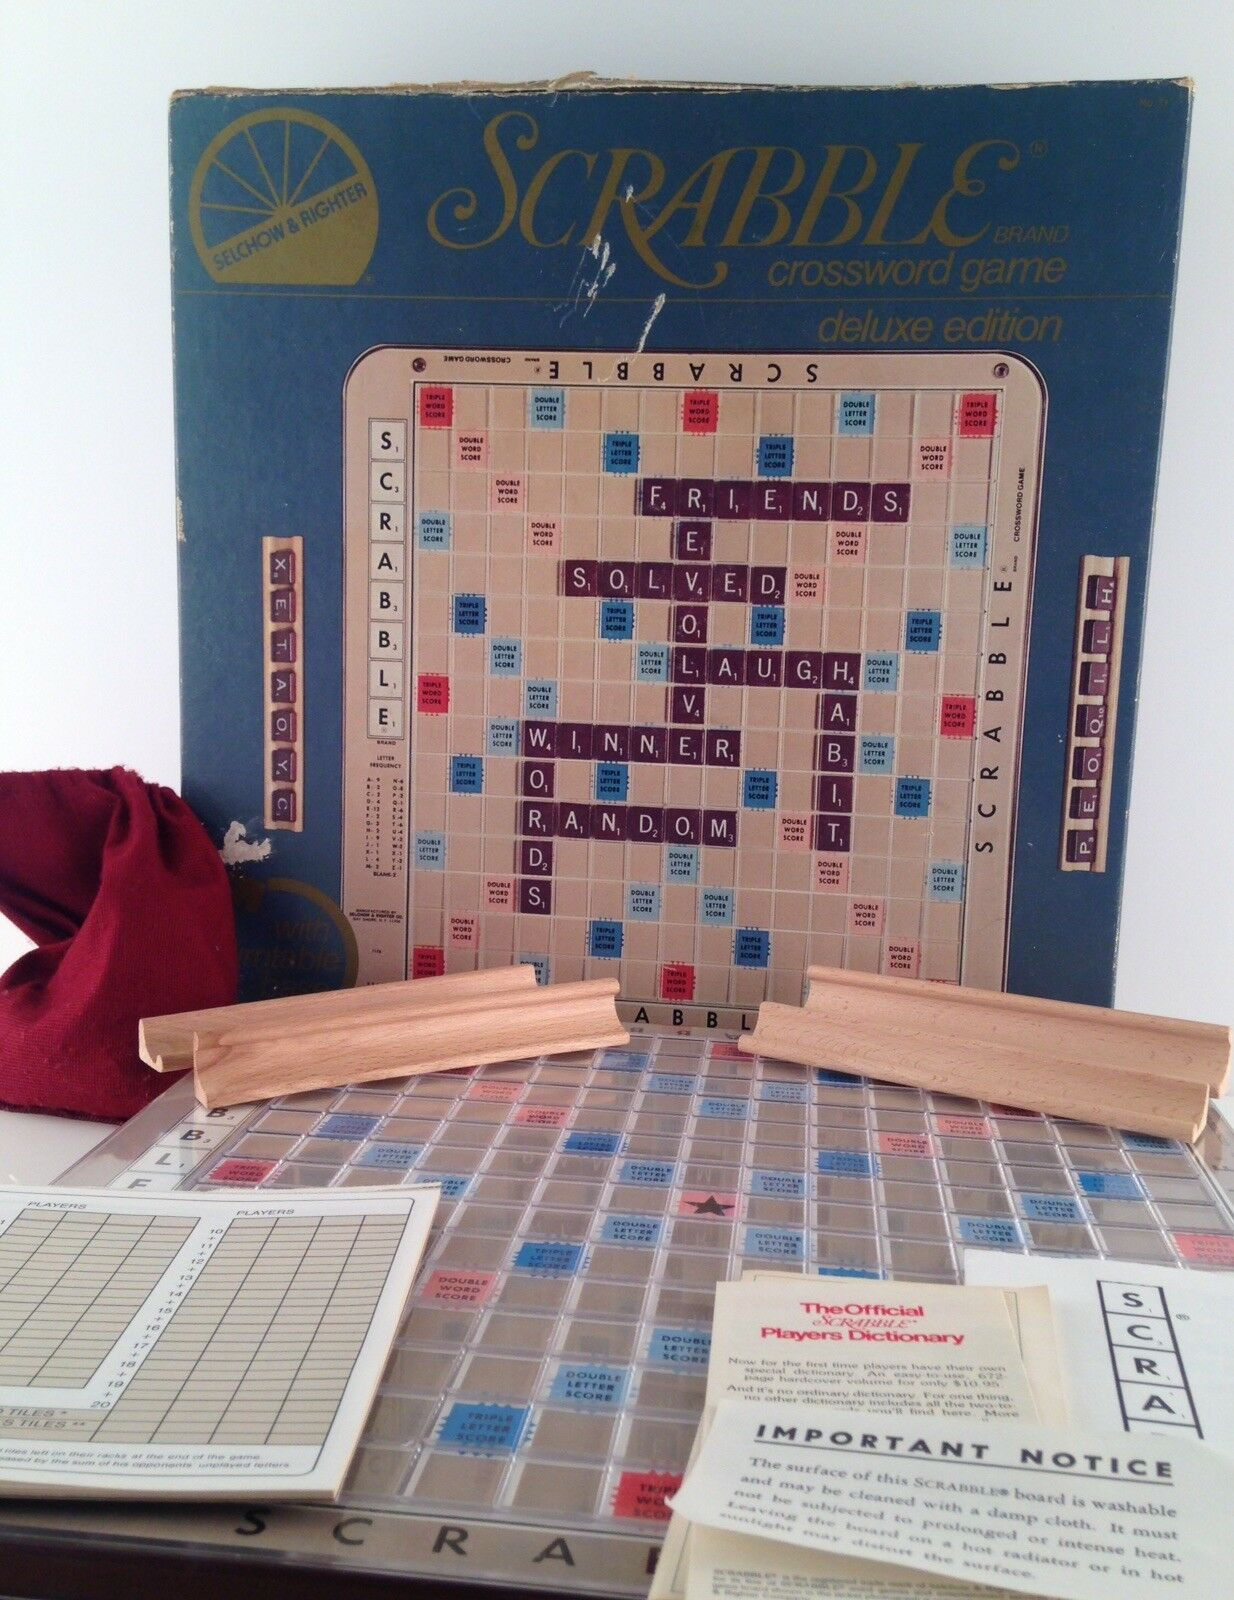 Scrabble Crossword Deluxe Edition Edition Edition Turntable 1977 82 Made In USA Selchow Righter a7a237